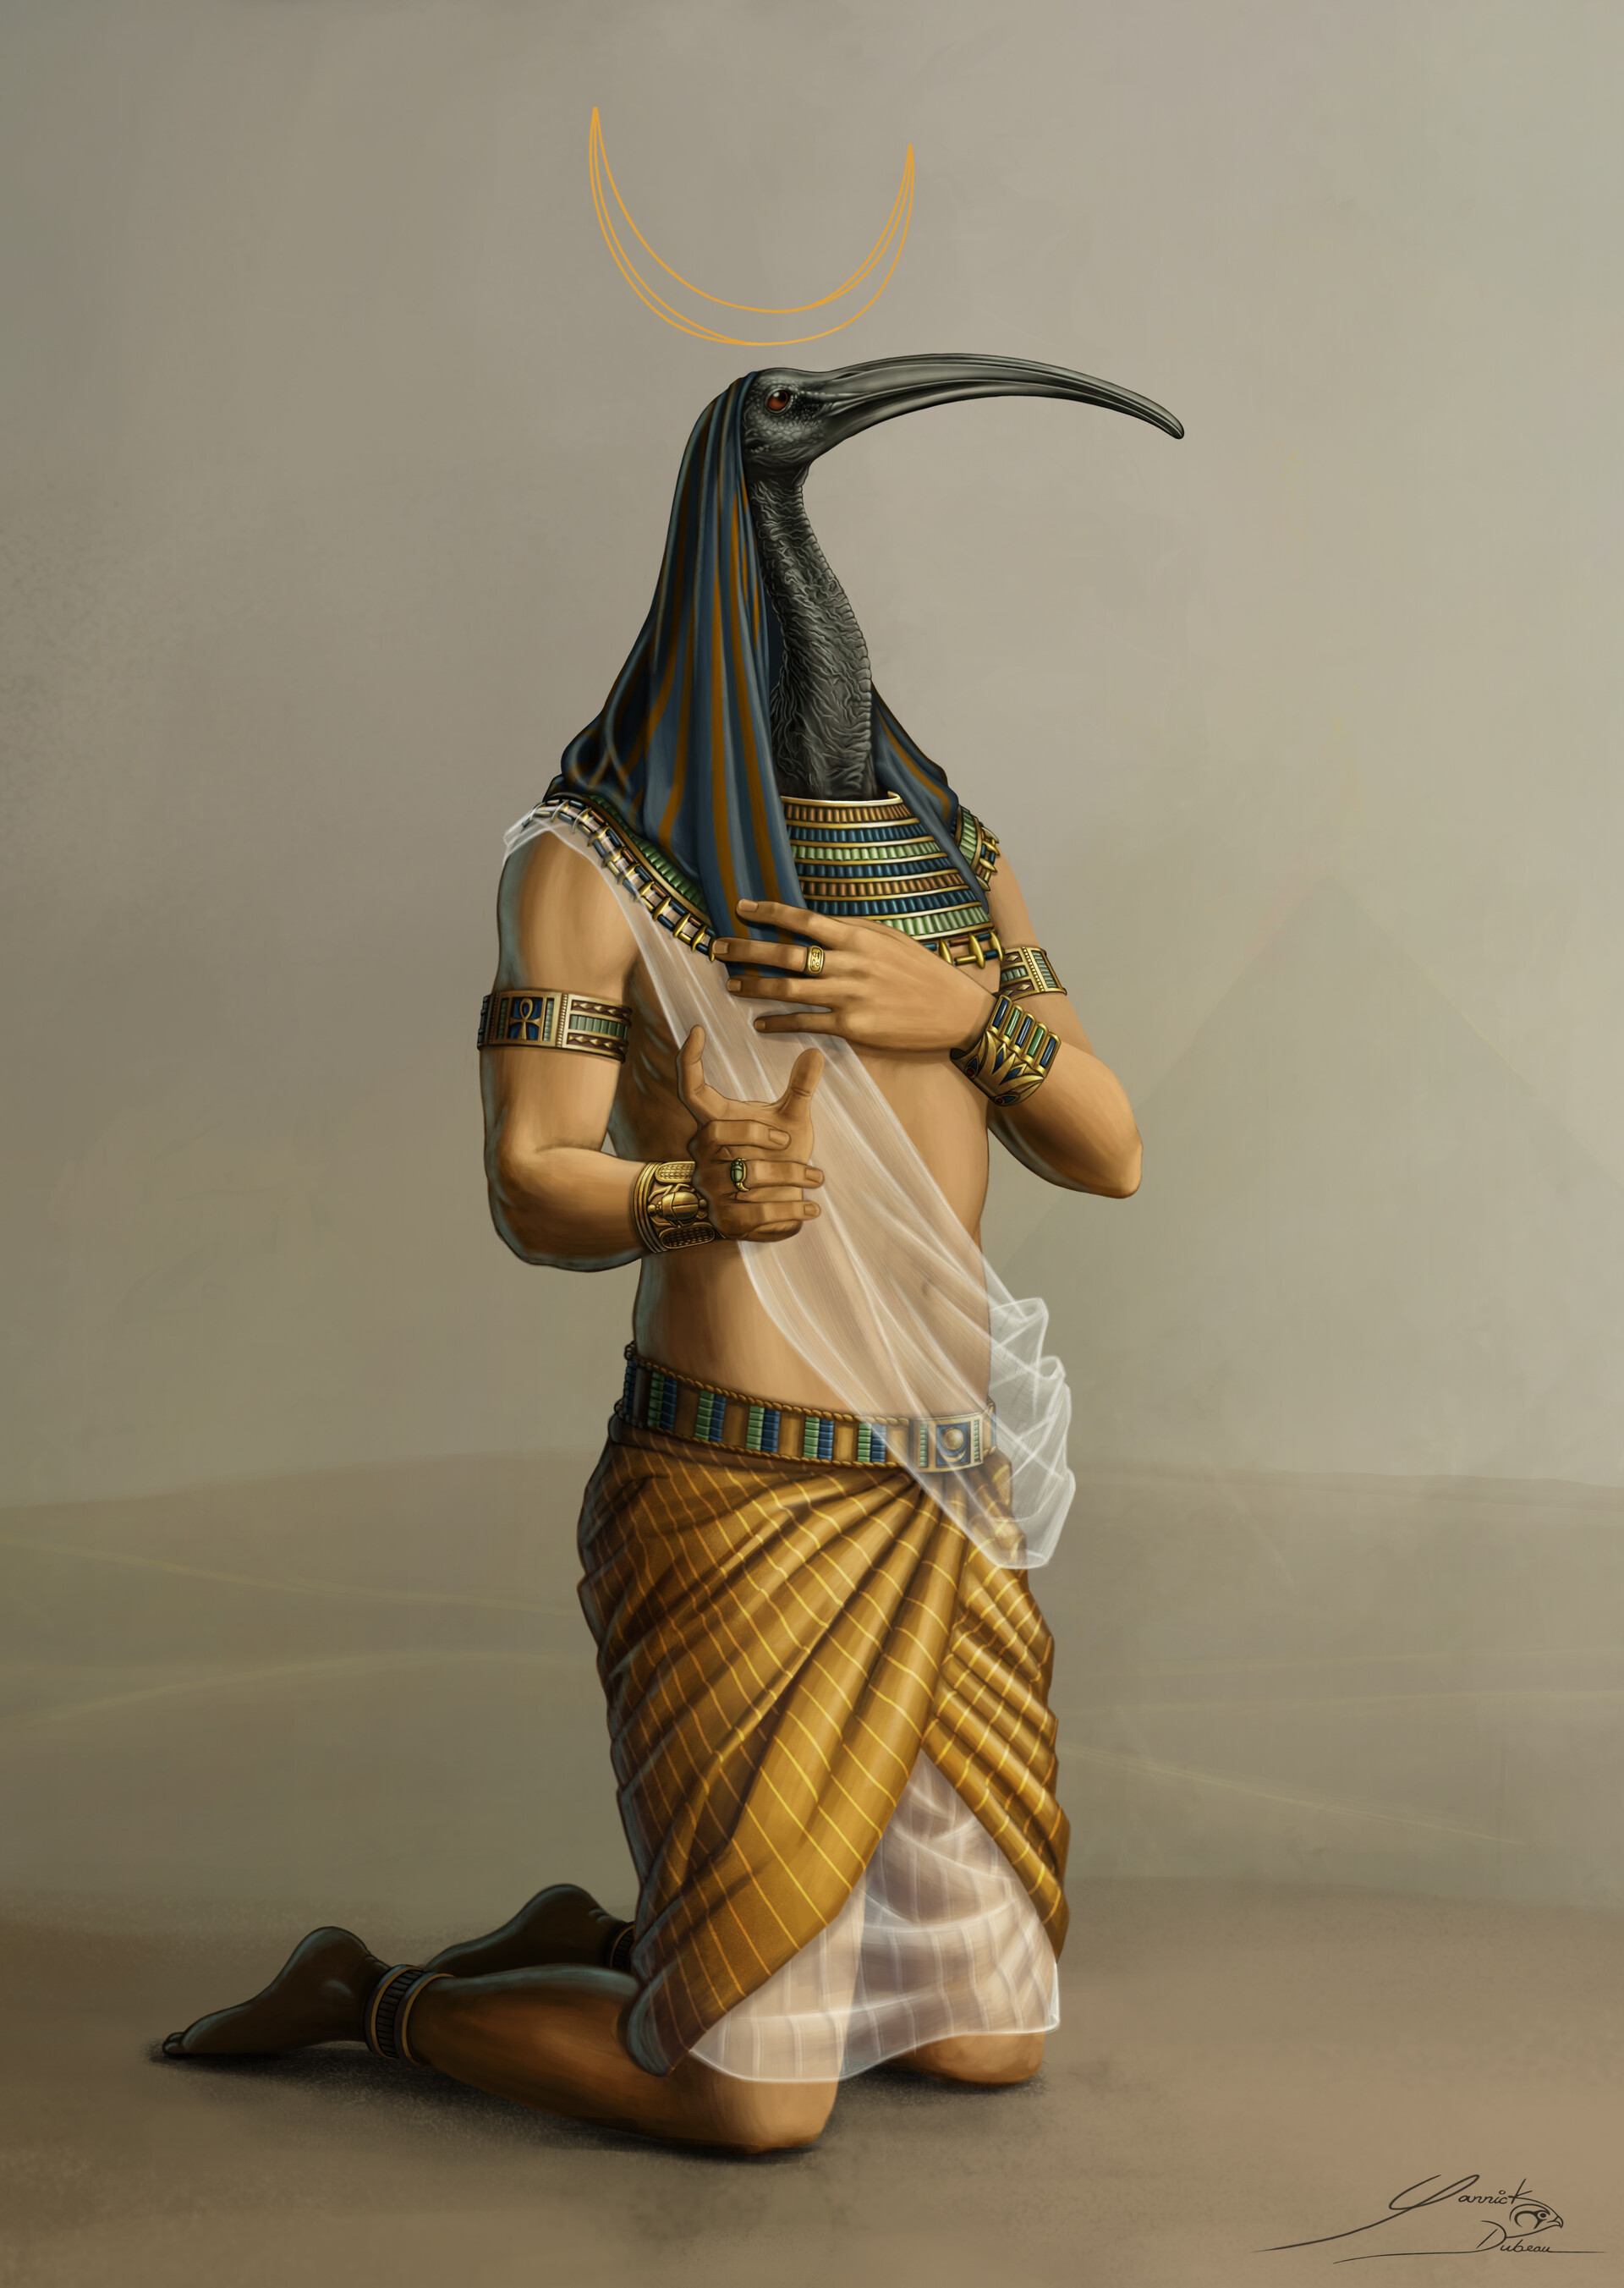 thoth egyptian god thoth thoth god ibis god thoth emerald tablets thoth meaning egyptian god with ibis head thoth facts thoth the atlantean prince of swords thoth ibis egyptian god hermes thoth ibis headed god thoth online thoth egyptian god facts thoth tablets thoth baboon the universe thoth thoth god of knowledge and wisdom the moon thoth art thoth egyptian thoth thoth ibis the sun thoth thoth and anubis ibis mythology thoth in english djehuty god the lovers thoth thoth in the bible thoth god of wisdom thoth mythology lord thoth thoth head thoth in egyptian hermes and thoth science thoth strife thoth ibis goddess thoth meditation thoth and jesus egyptian god ibis head ancient egyptian god thoth thoth and horus thor egyptian god thoth and the emerald tablets thoth magic victory thoth djehuti god success thoth blue thoth oppression thoth 3 of disks thoth peace thoth the thoth green tablets of thoth happiness thoth thoth deity thoth anubis thoth moon god emerald tablets of thoth summary three of disks thoth tehuti thoth horus thoth god with ibis head lovers thoth disappointment thoth thoth the universe egyptian thot thoth egyptian name thoth moses gain thoth thoth god of knowledge thoth horus thoth name egyptian god with head of ibis thoth writing djehuty egyptian god wisdom of thoth thoth jesus five of disks thoth thoth god facts thoth in egyptian writing sun thoth the god thoth of ancient egypt khonsu and thoth enki thoth thoth for the day thoth spiritual meaning djehuti thoth thoth hermes enoch emerald thoth drunvalo melchizedek thoth i thoth osiris and thoth emerald tablets of thoth authenticity graham hancock thoth egyptian god of scribes invoking thoth head of thoth thoth myths egyptian god tehuti thoth secret knowledge thoth religion hermes thoth enoch thoth god of writing ibis headed deity interesting facts about thoth zin uru thoth meaning thoth in gods of egypt the green tablets of thoth ancient egyptian god of wisdom wiki thoth tahuti thoth thoth knowledge